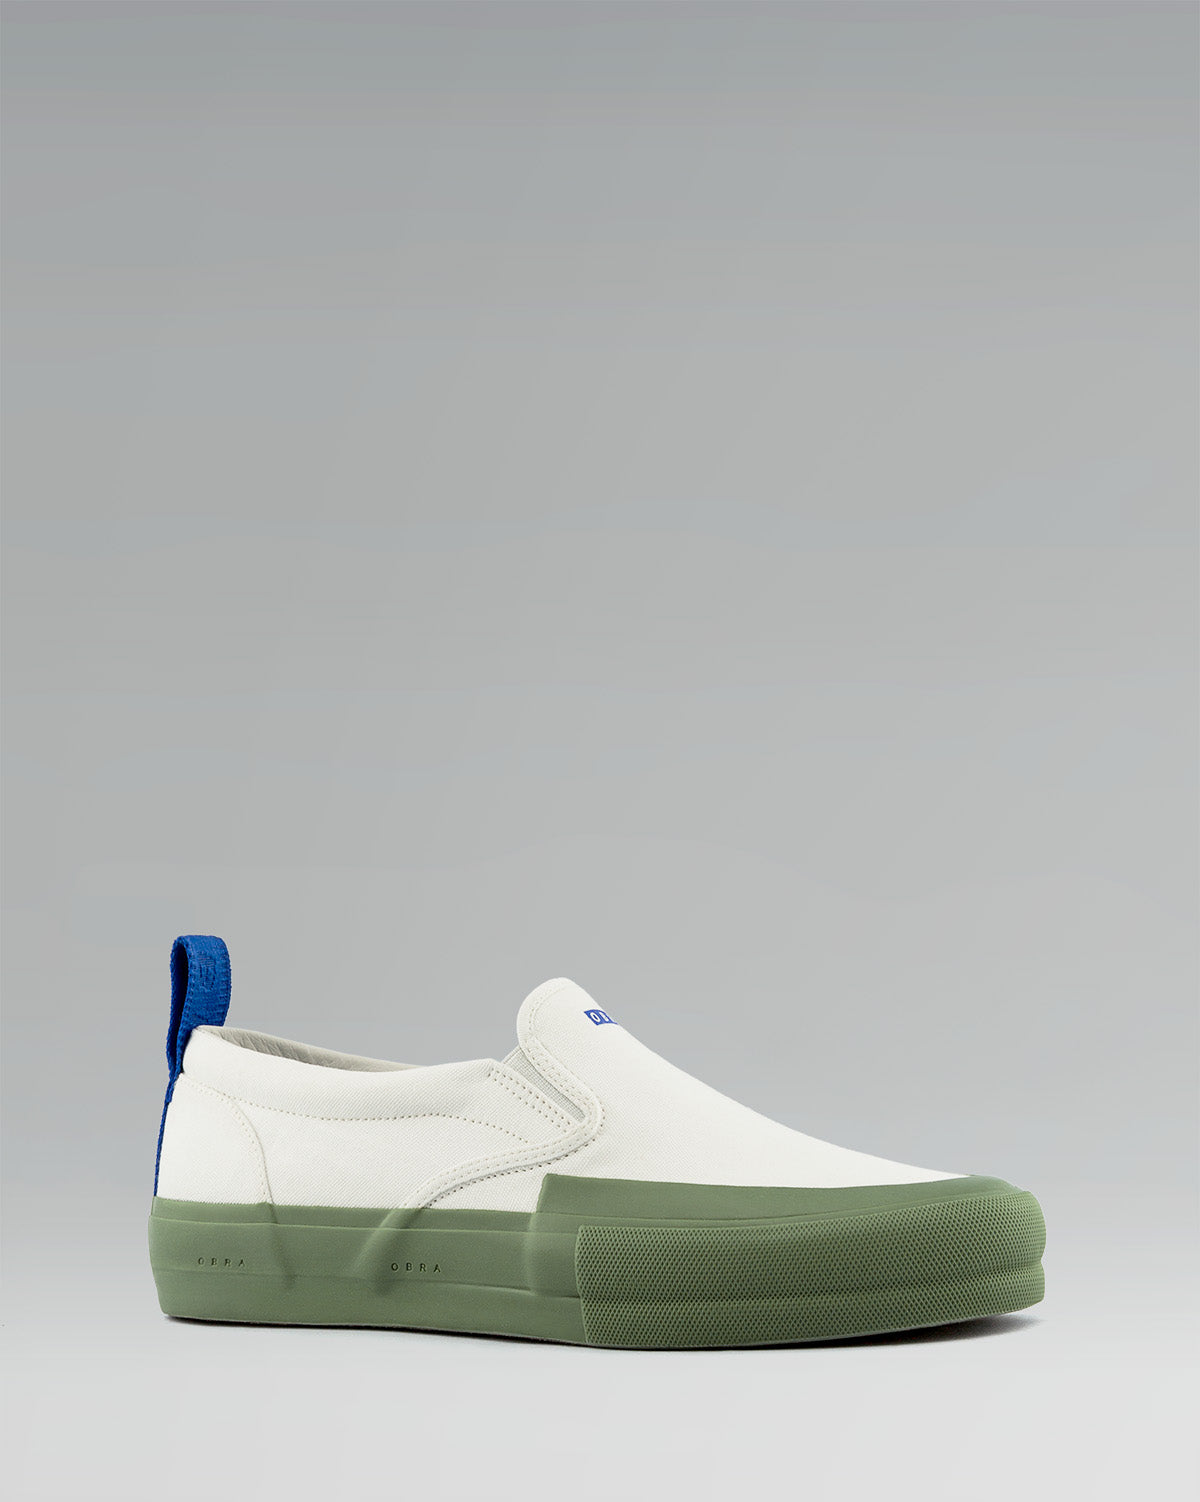 240 CANVAS SLIP-ON WRAP TOE<br />White/Sage/OBRA Blue